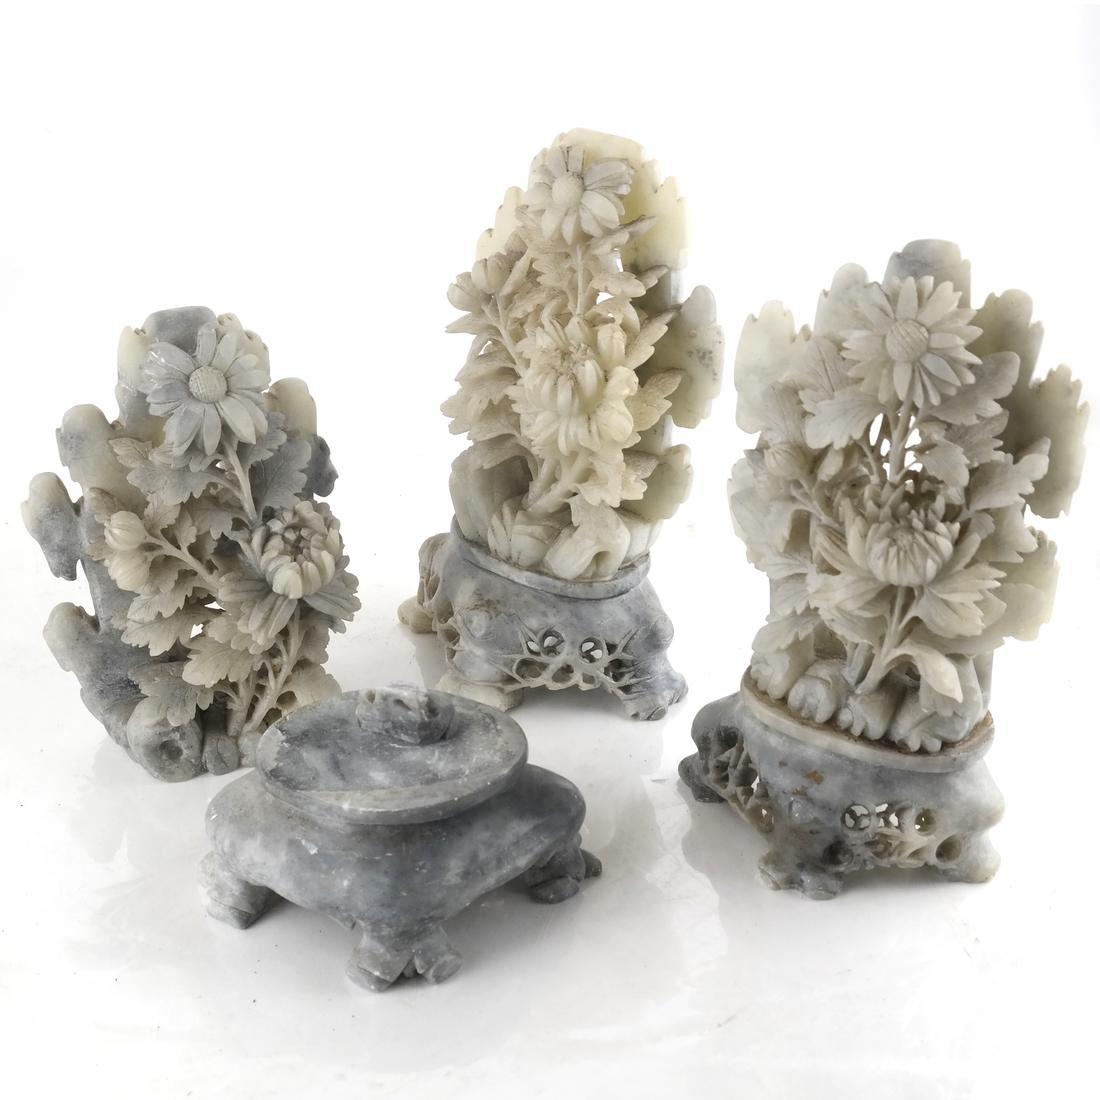 Set of Three Soapstone and Hardstone Floral Sculptures